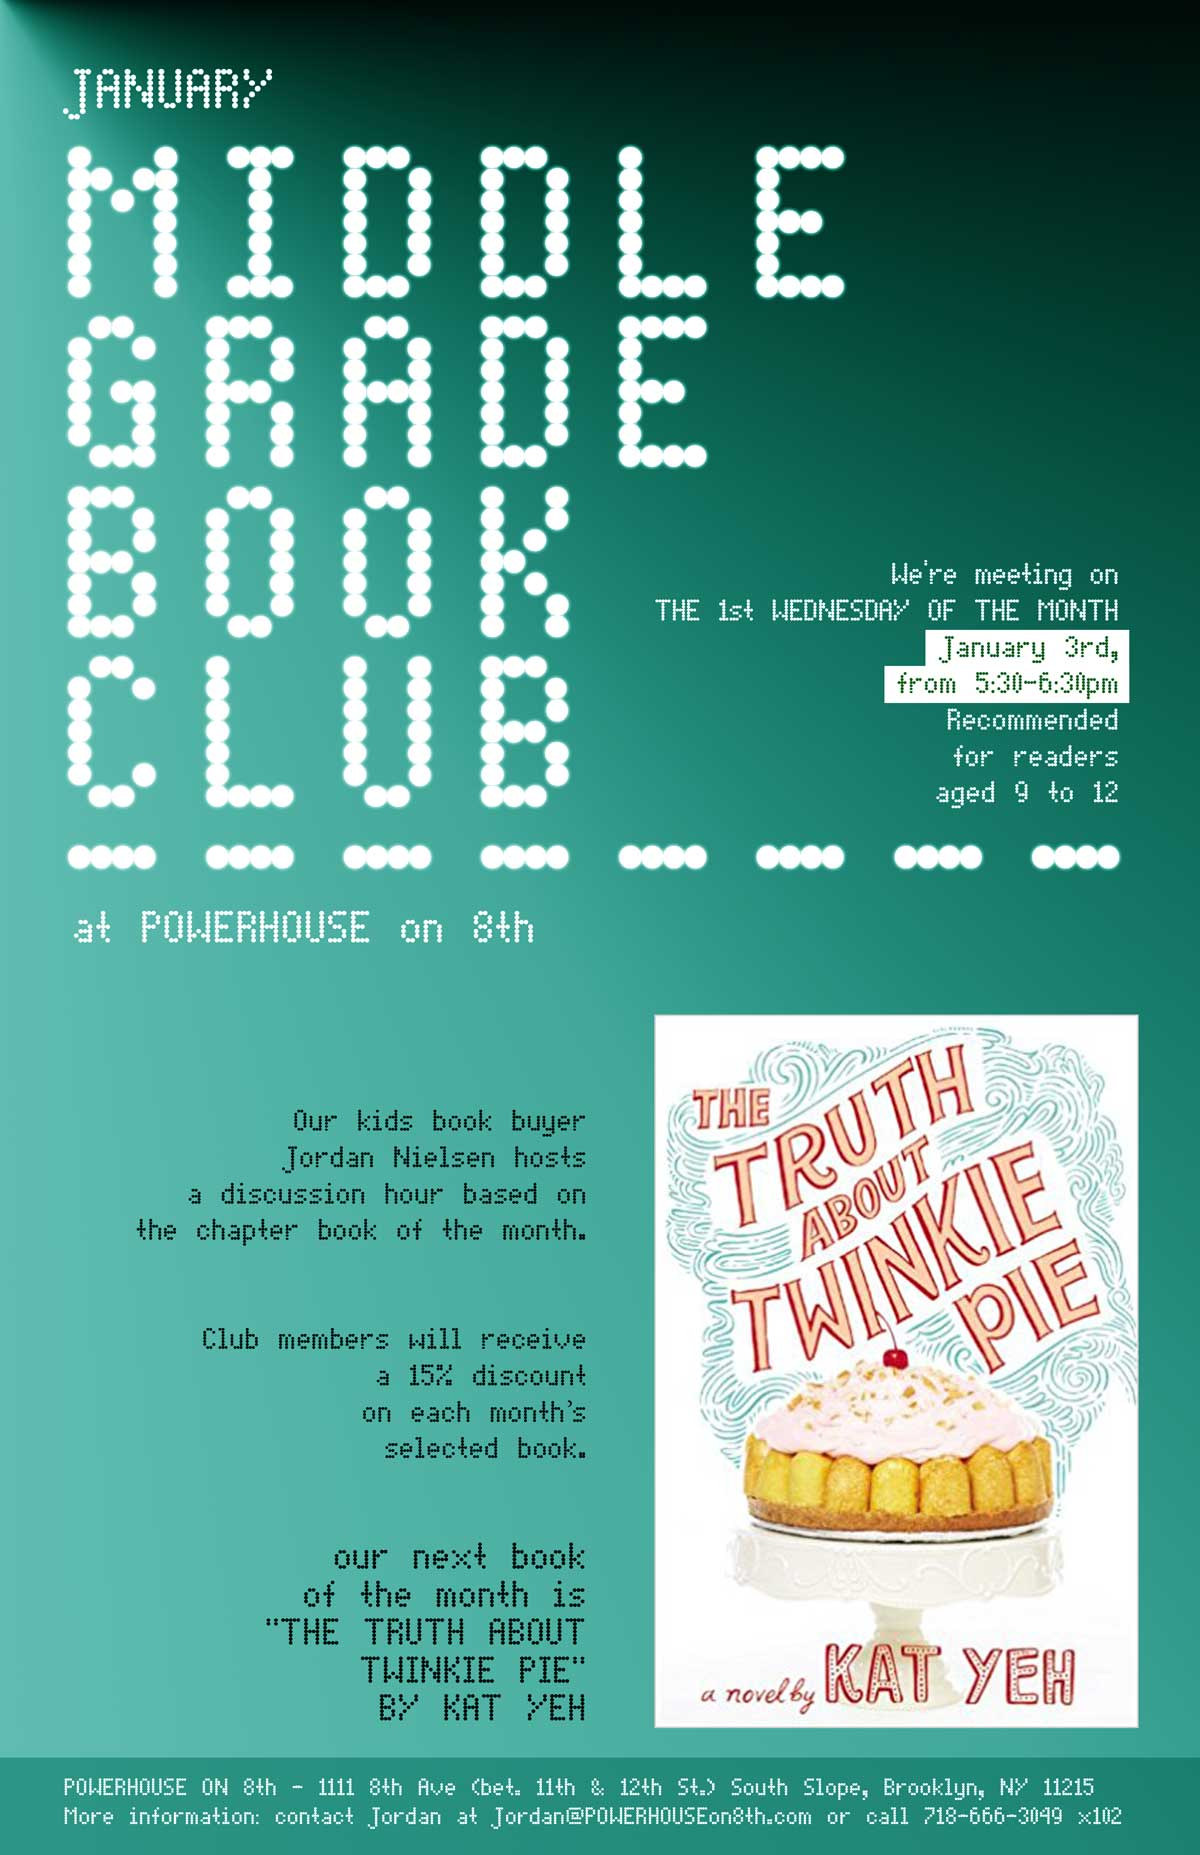 Middle Grade Book Club: The Truth About Twinkie Pie by Kat Yeh